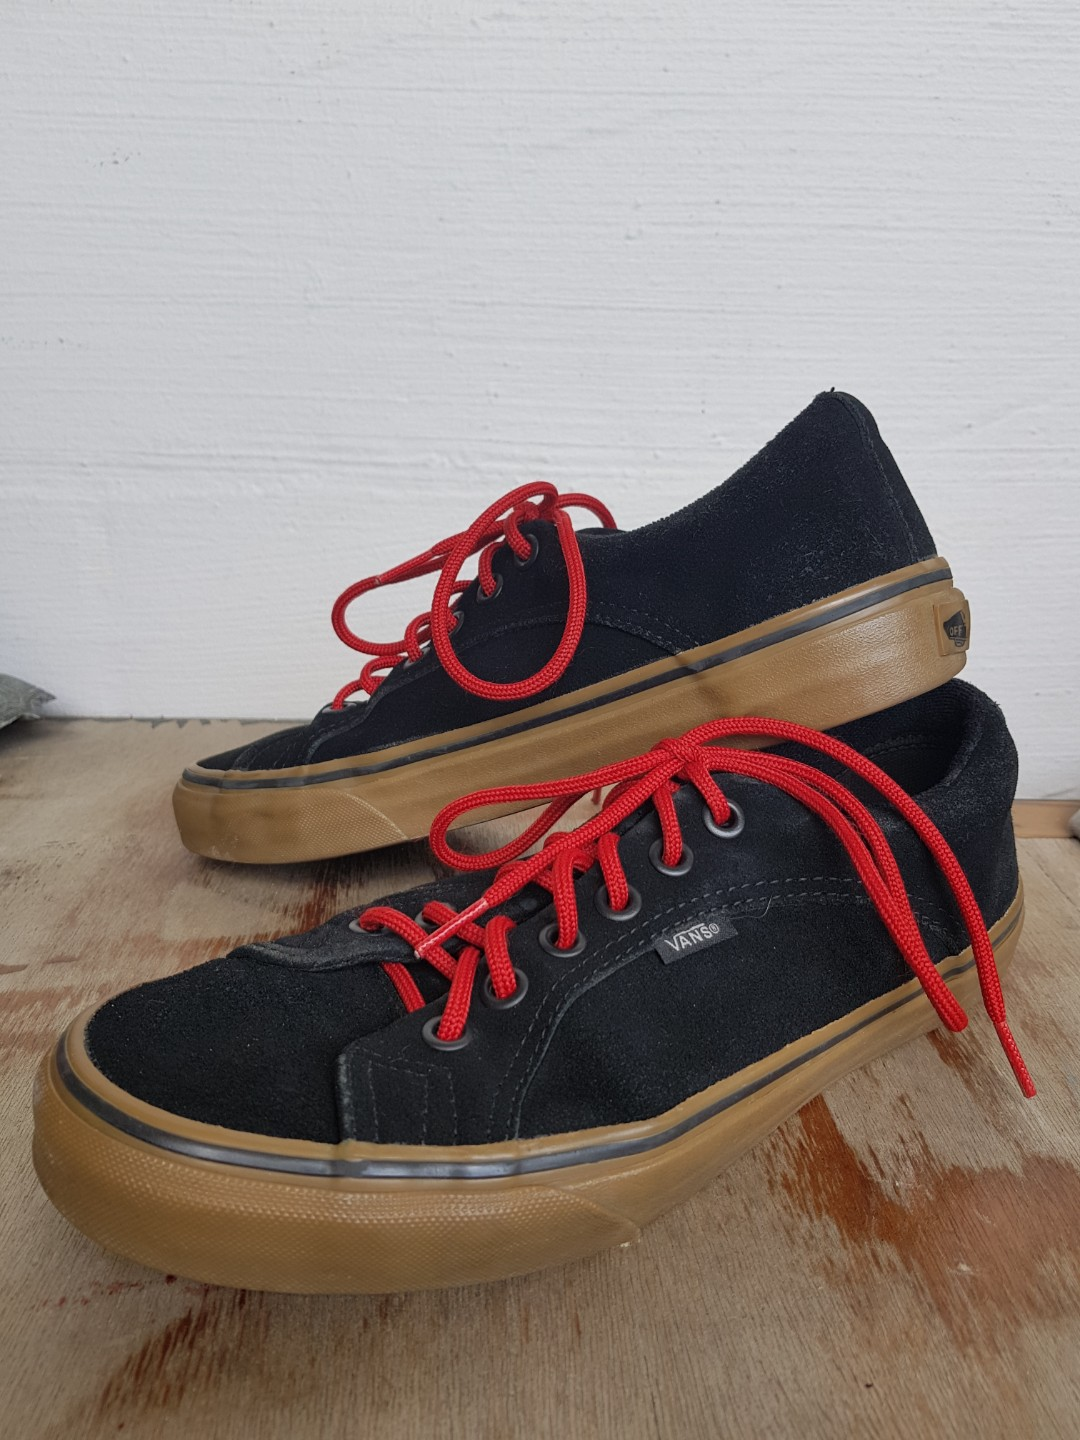 2020f5b8f6d Authentic vans black gumsole (price reduced from 49.90)